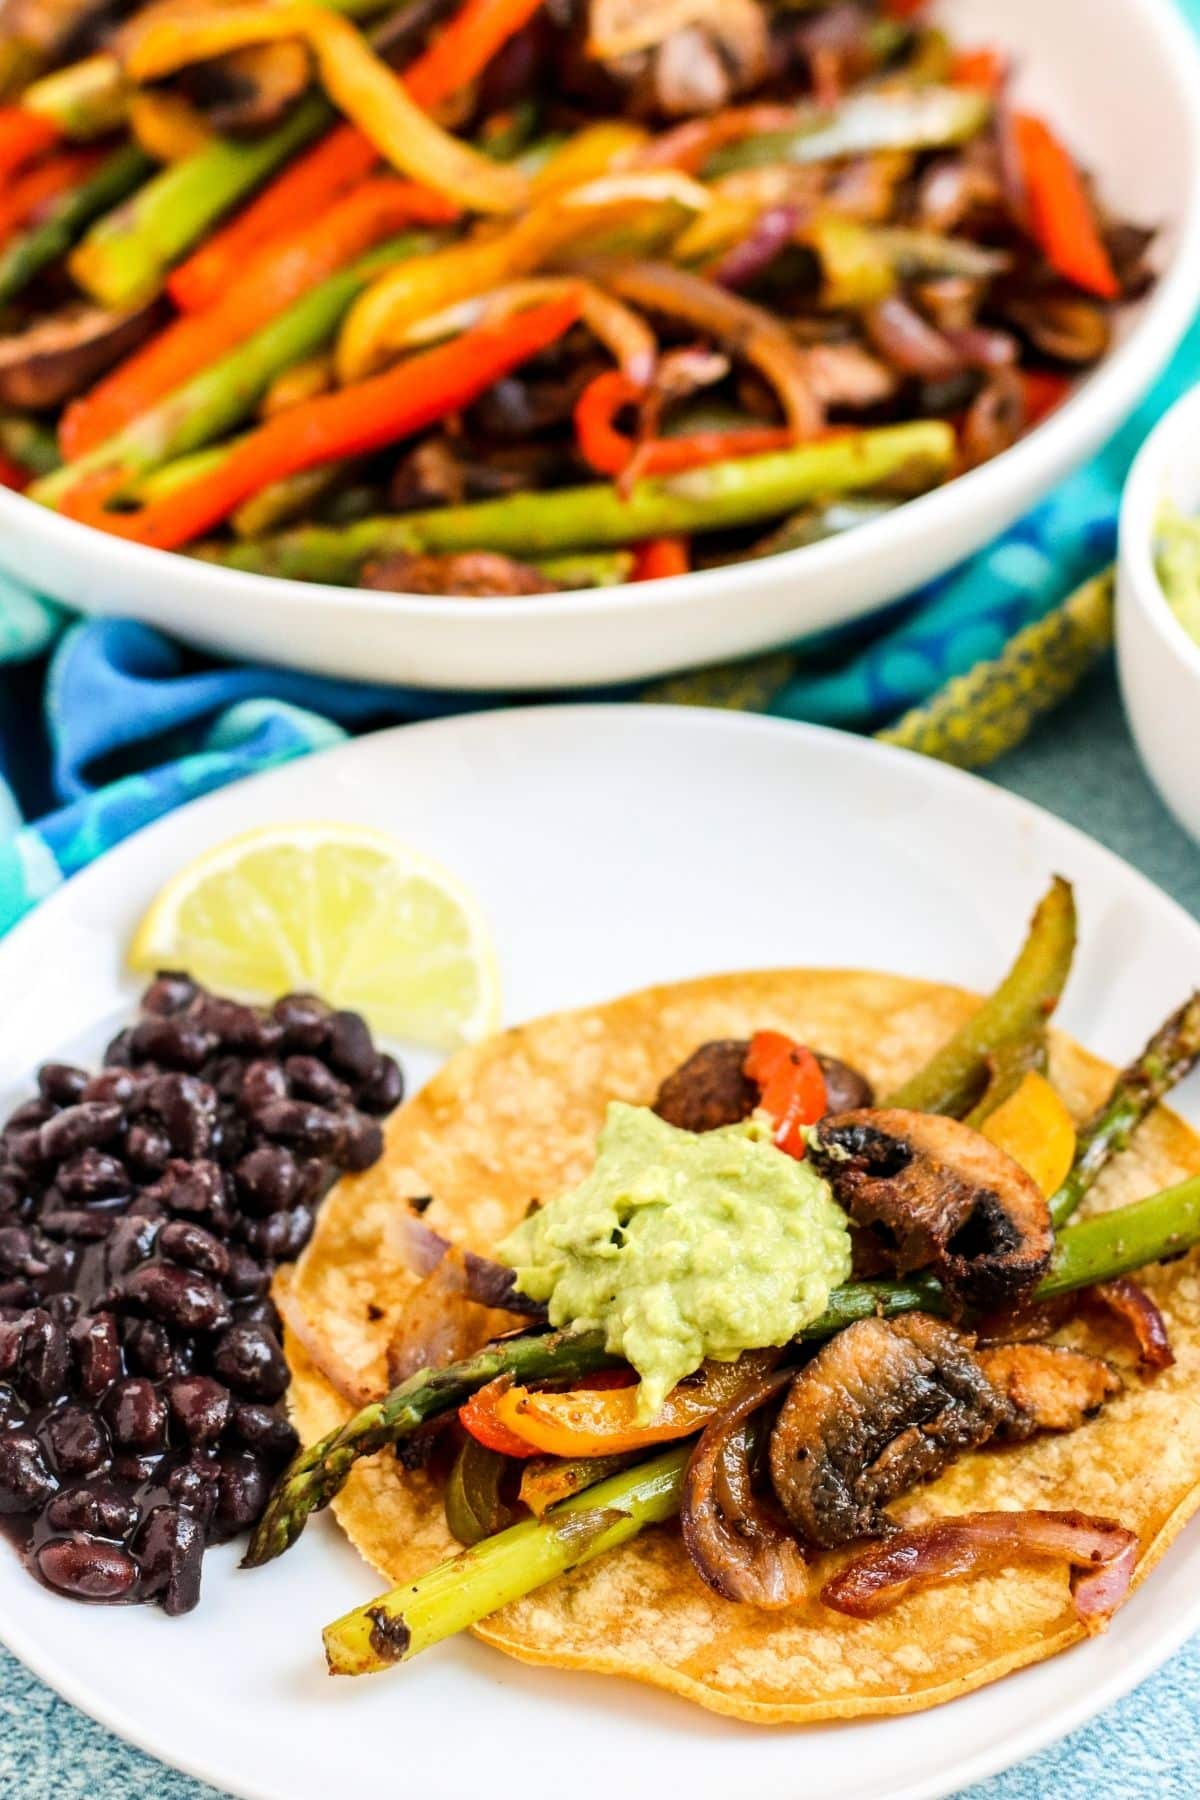 Plate with fajitas on a corn tortilla topped with guacamole and a side of black beans